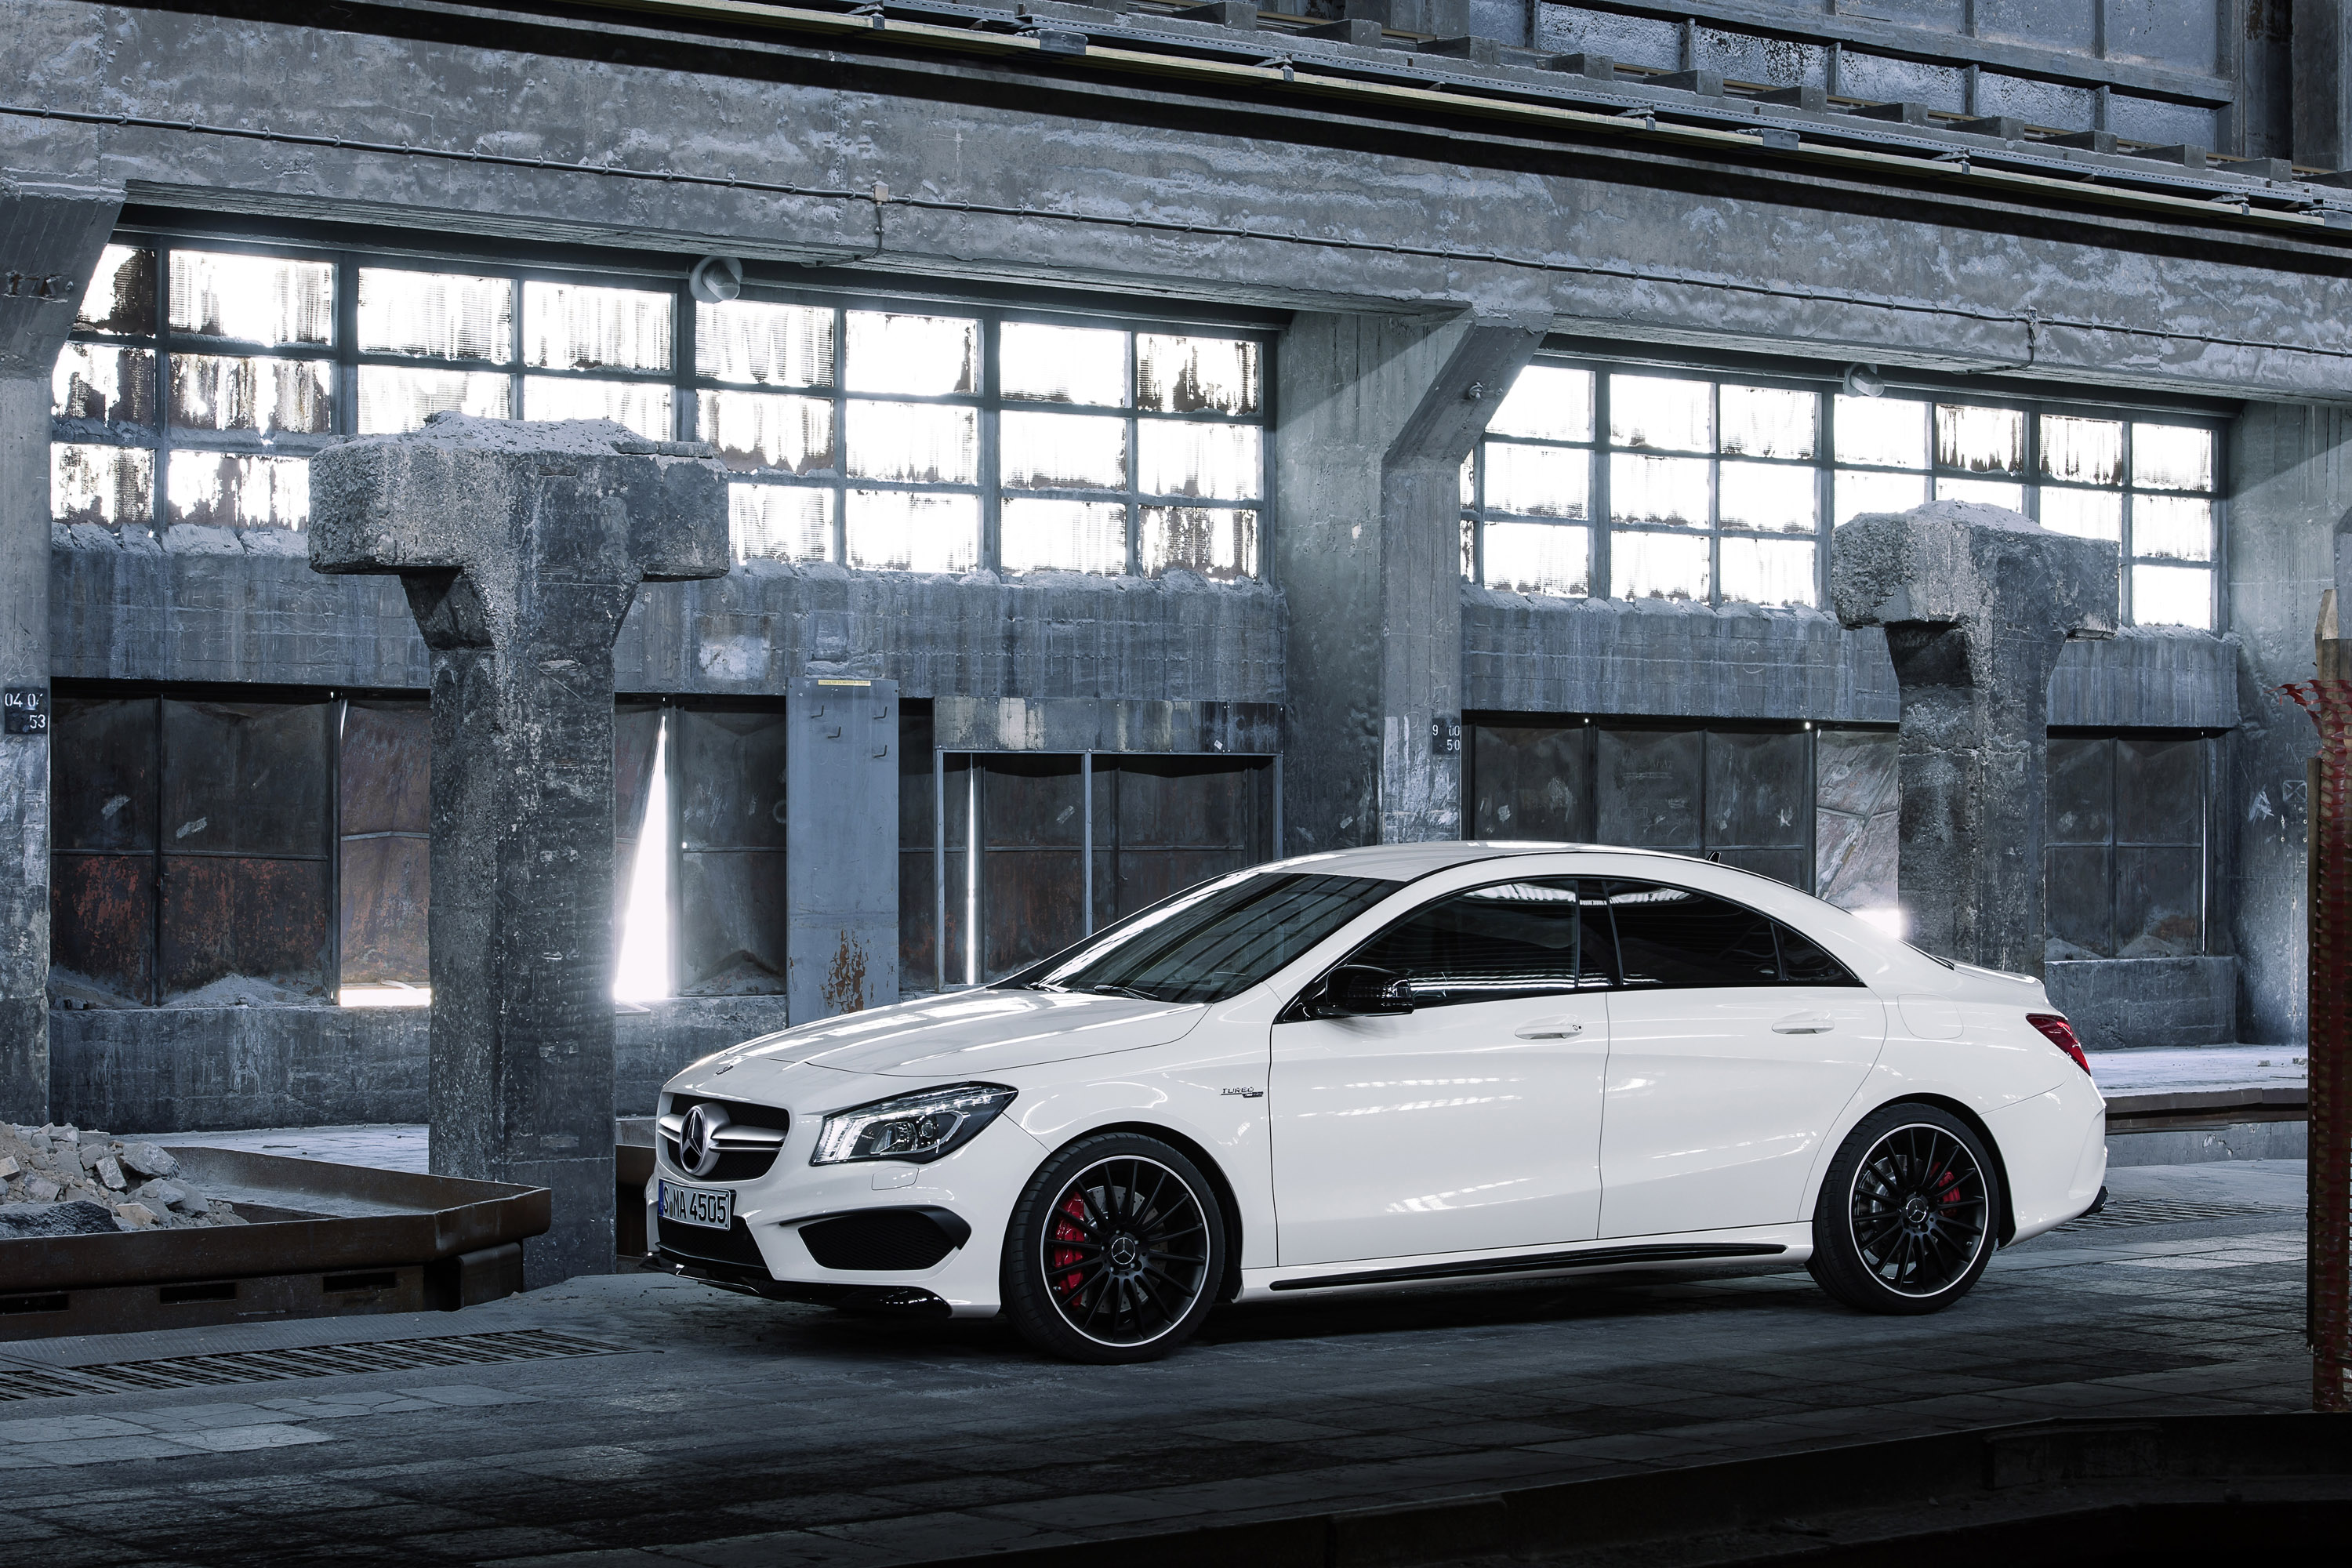 Mercedes-Benz CLA 45 AMG Picture 19 of 27, 2014